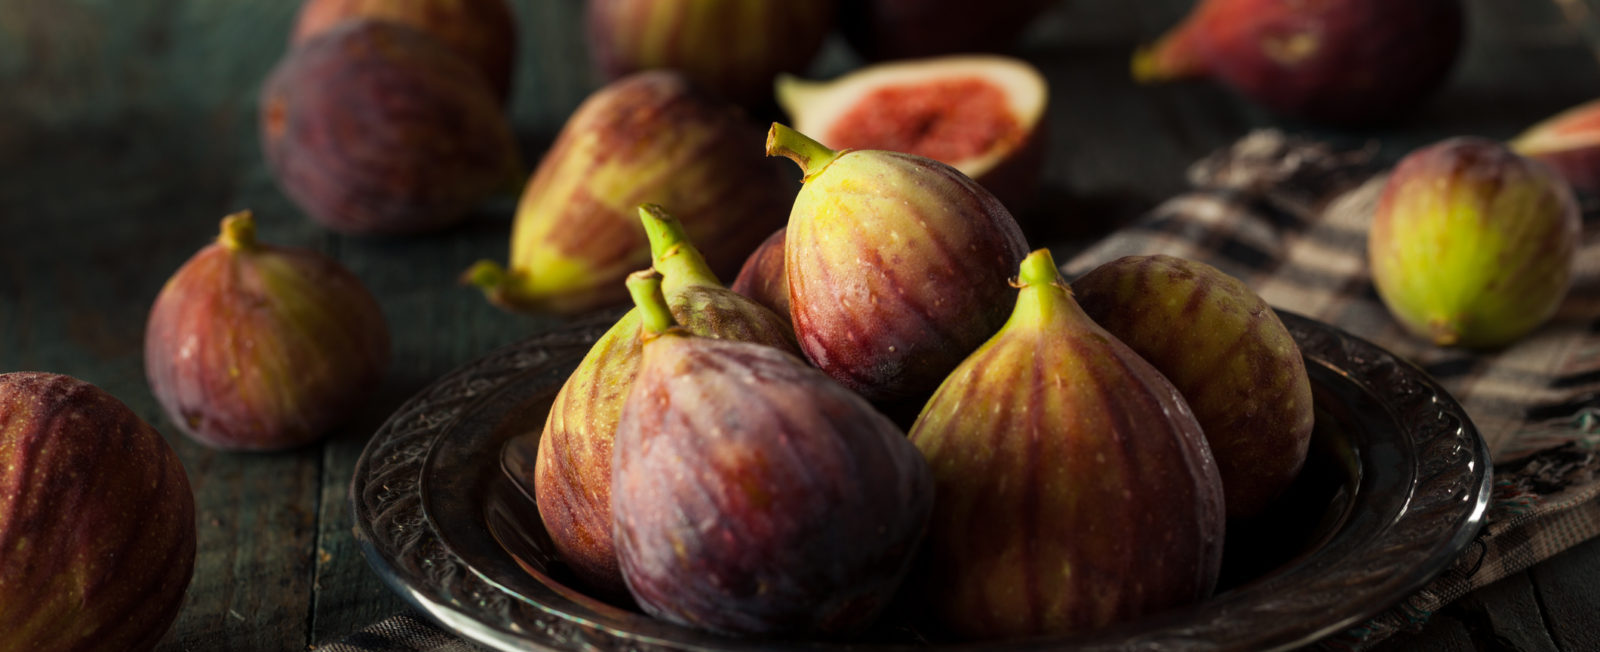 Autumn Figs | #pkway